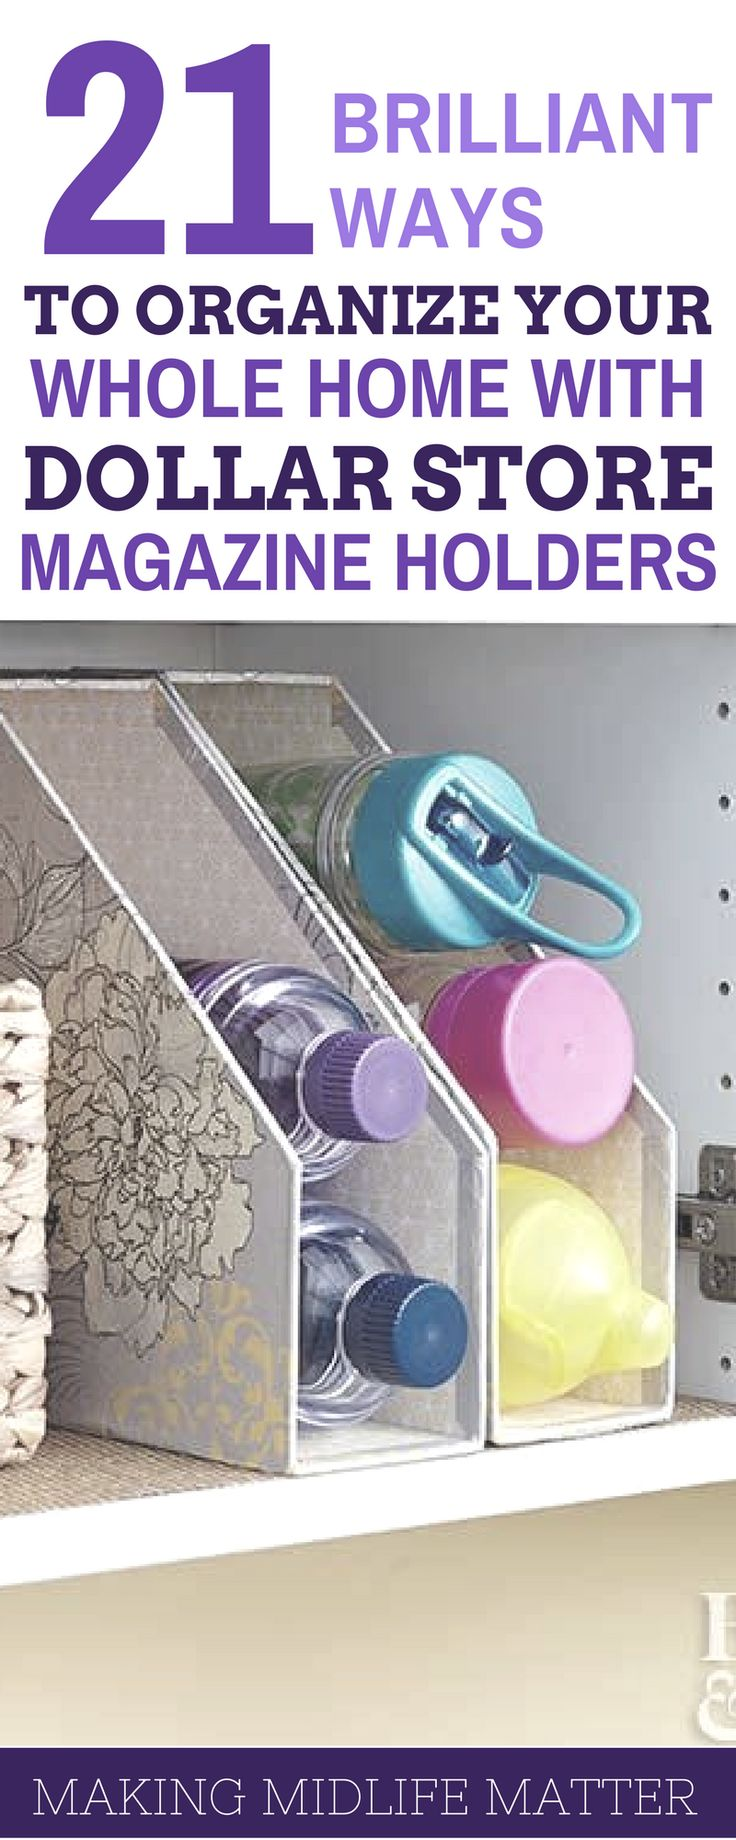 21 great ideas for organizing your whole home with dollar store magazine holders